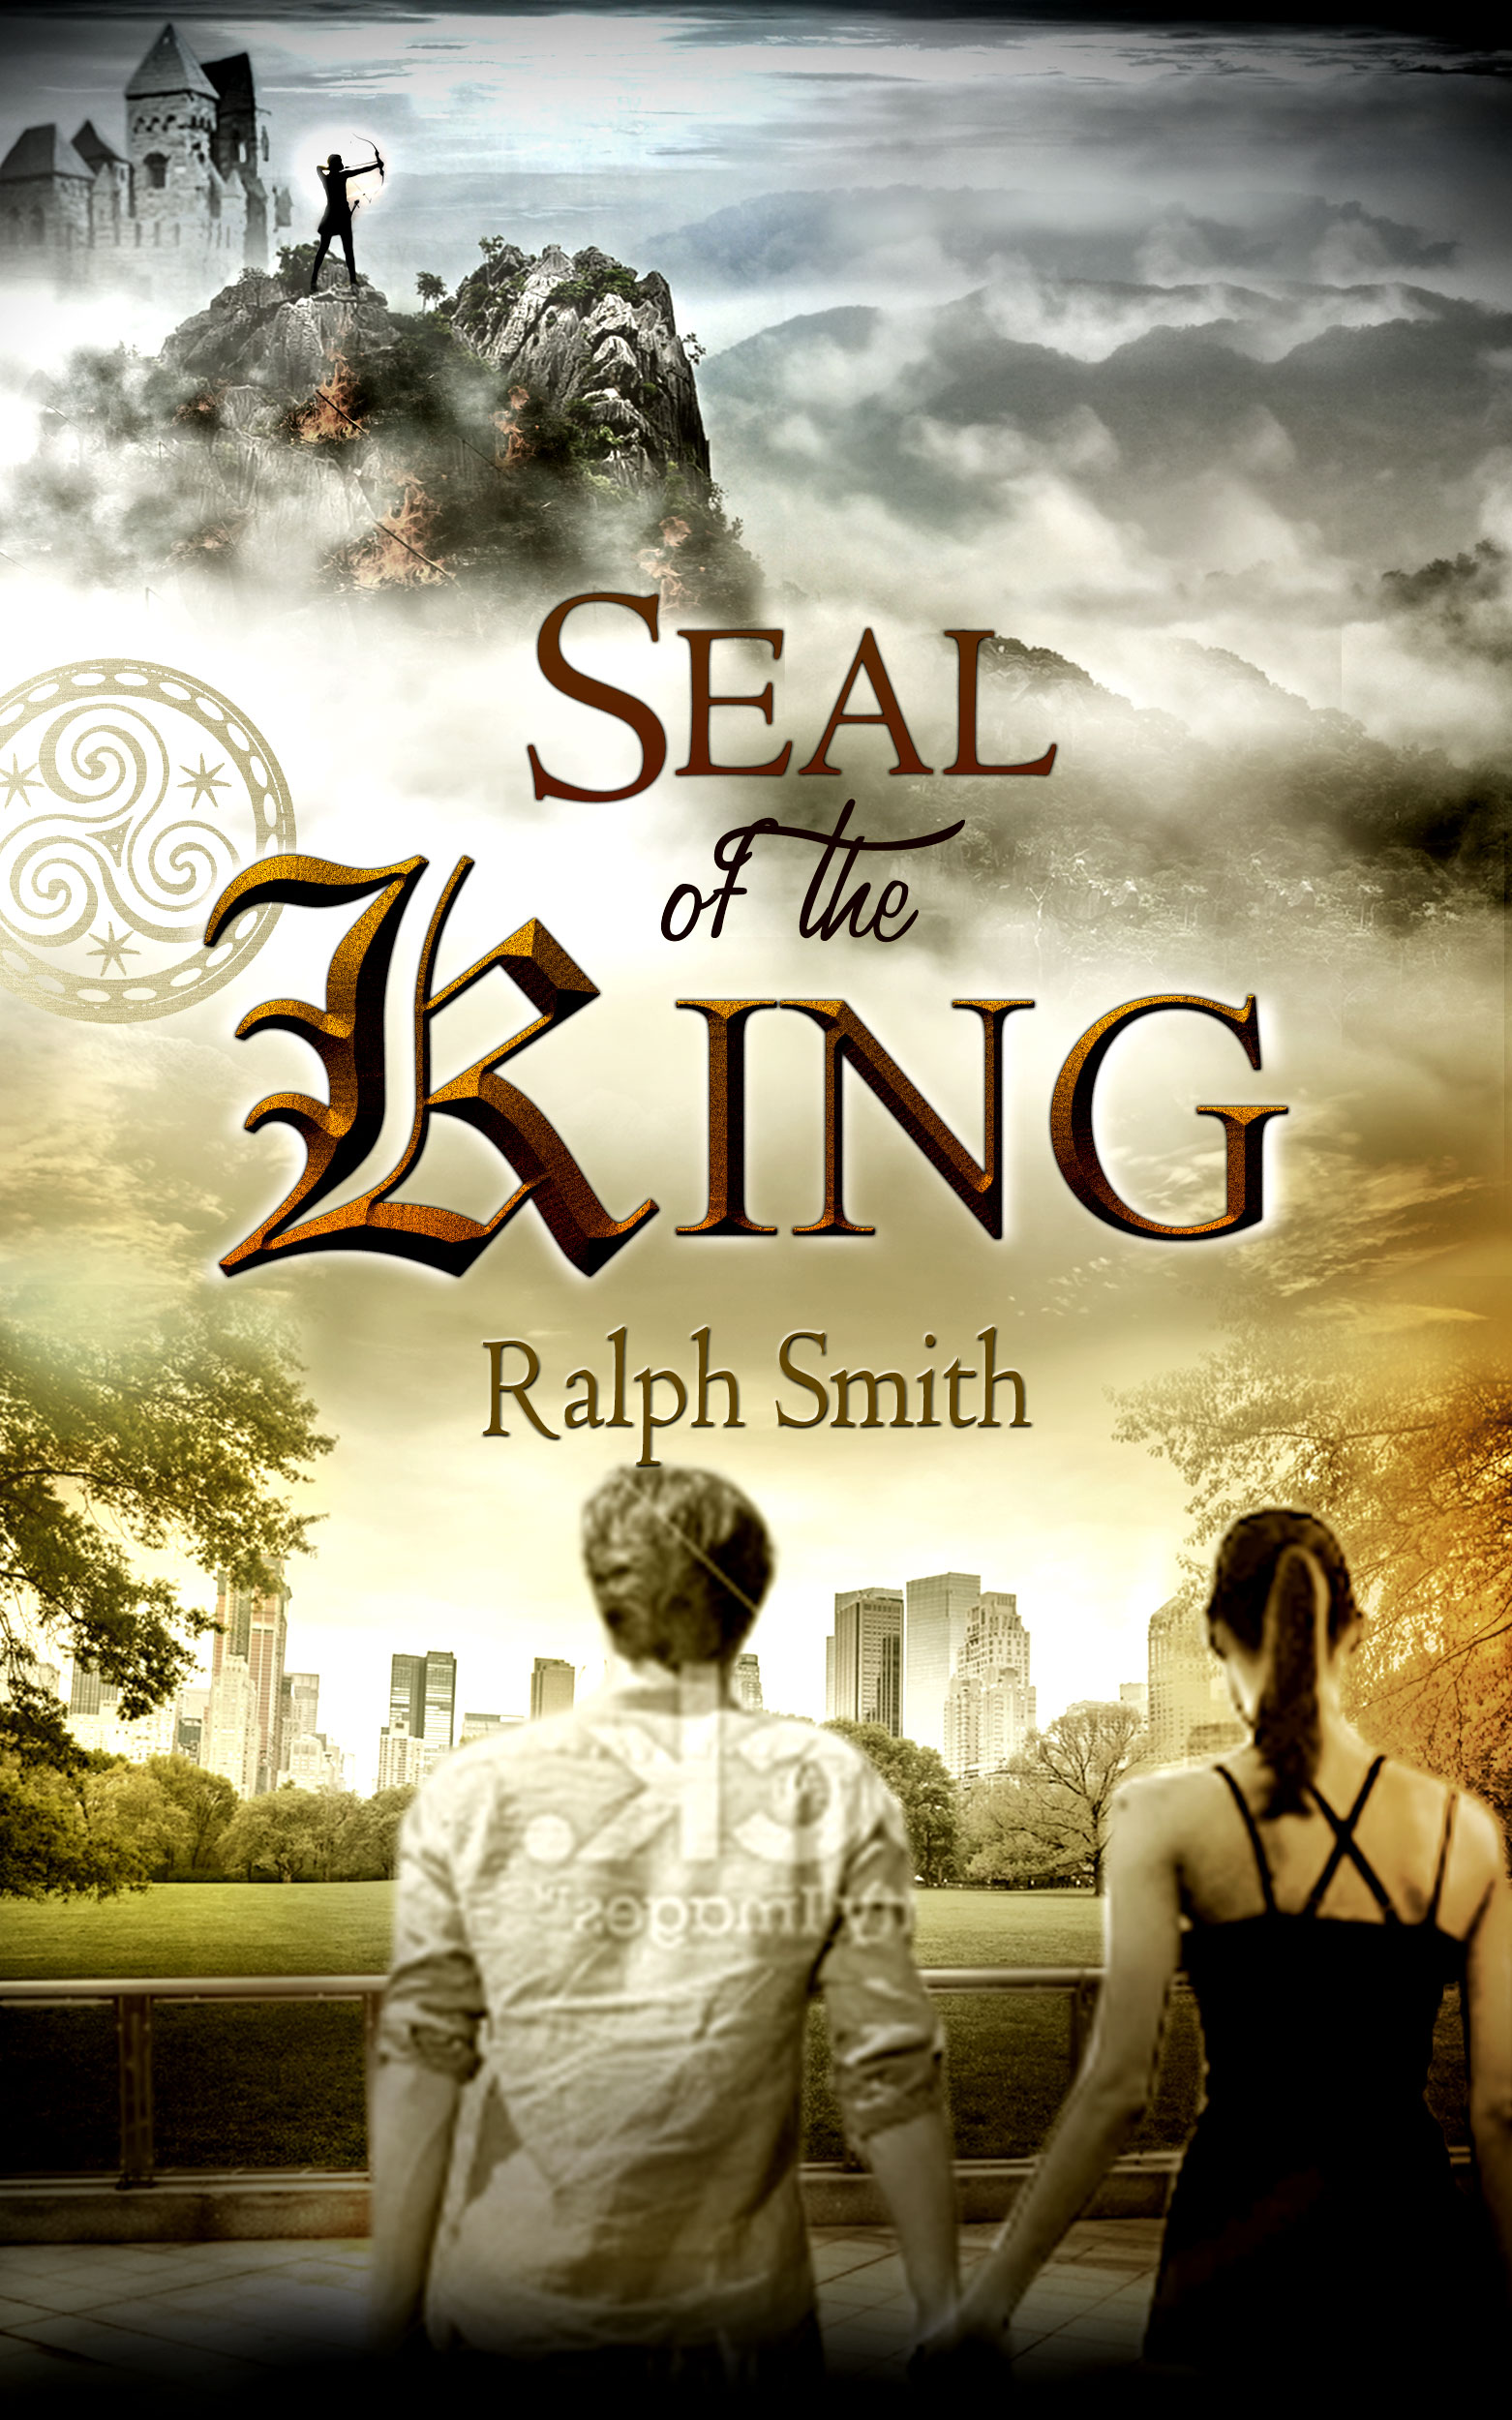 5 of 5 stars Unlike the start of many first books in a series, Seal of the King just starts engines revved up and ready to go